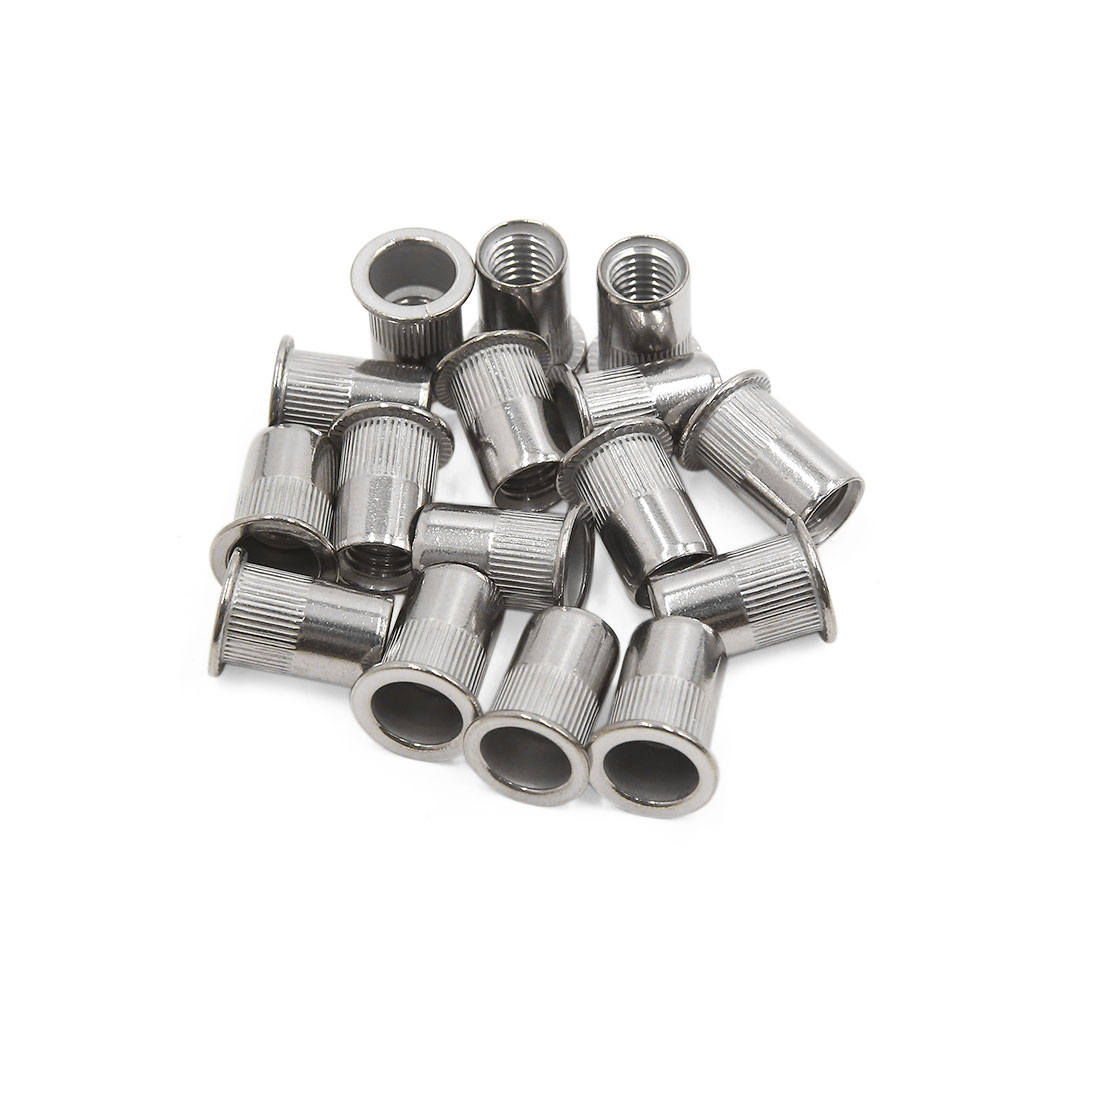 16pcs M10 304 Stainless Steel Flat Head Rivet Nut Insert for Car Vehicle